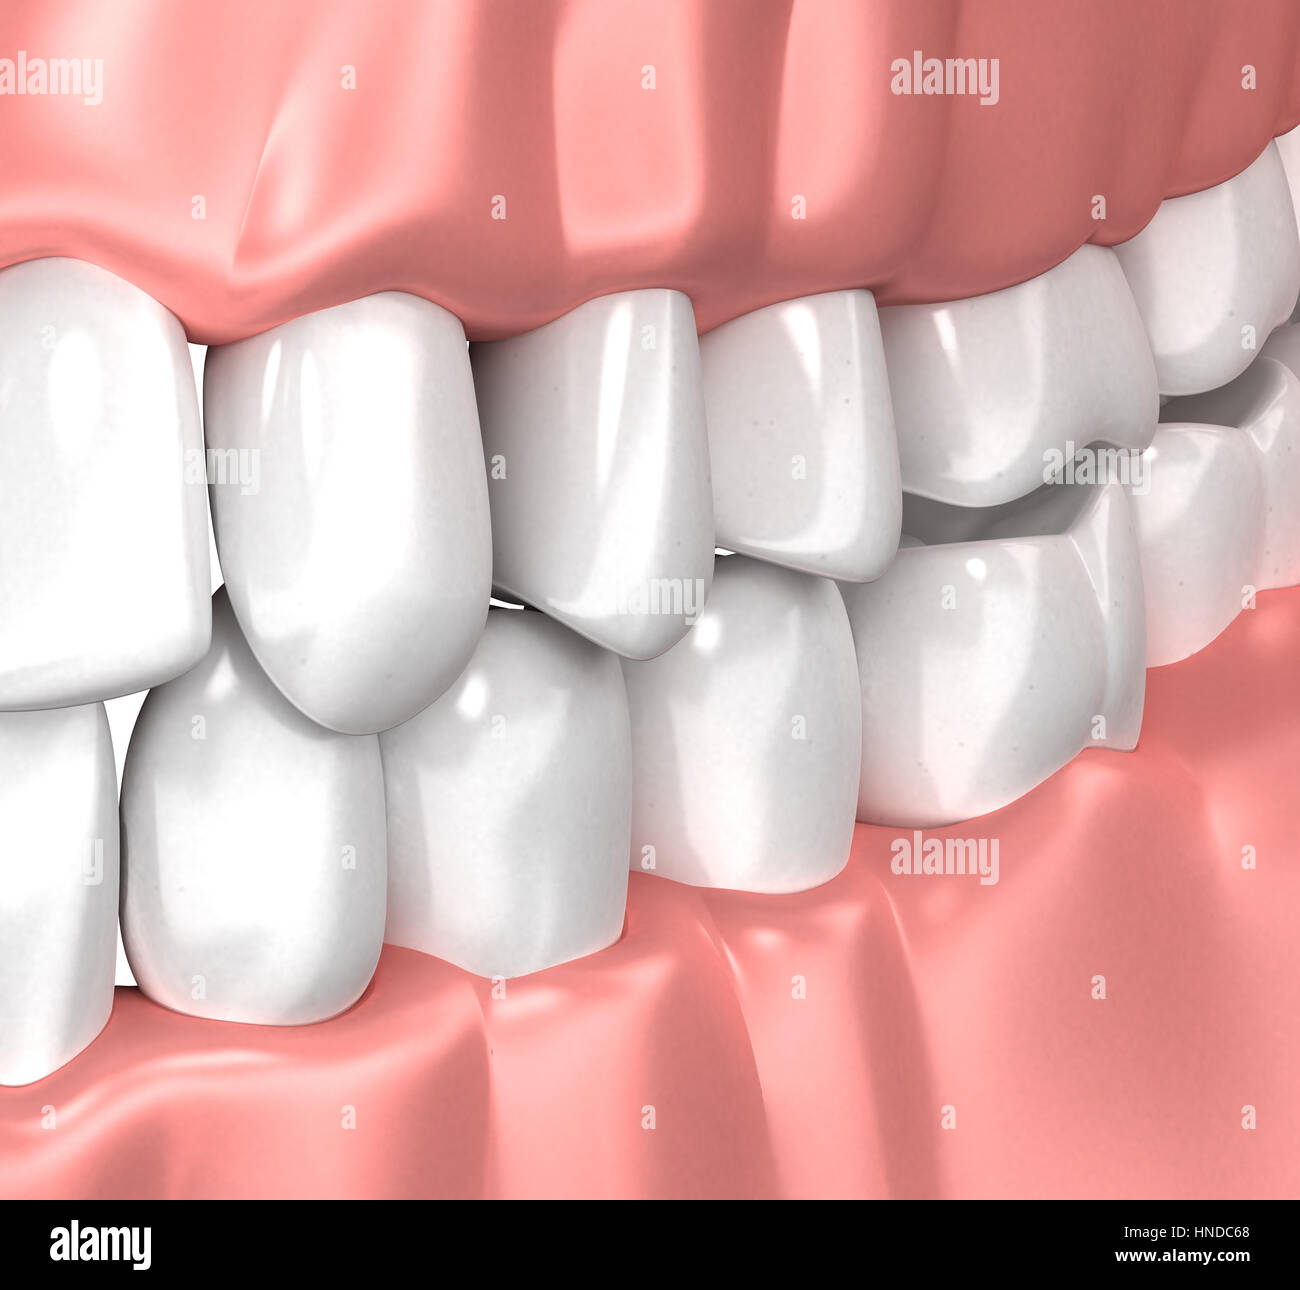 Teeth Gum Human Mouth Anatomy - 3d illustration Stock Photo ...